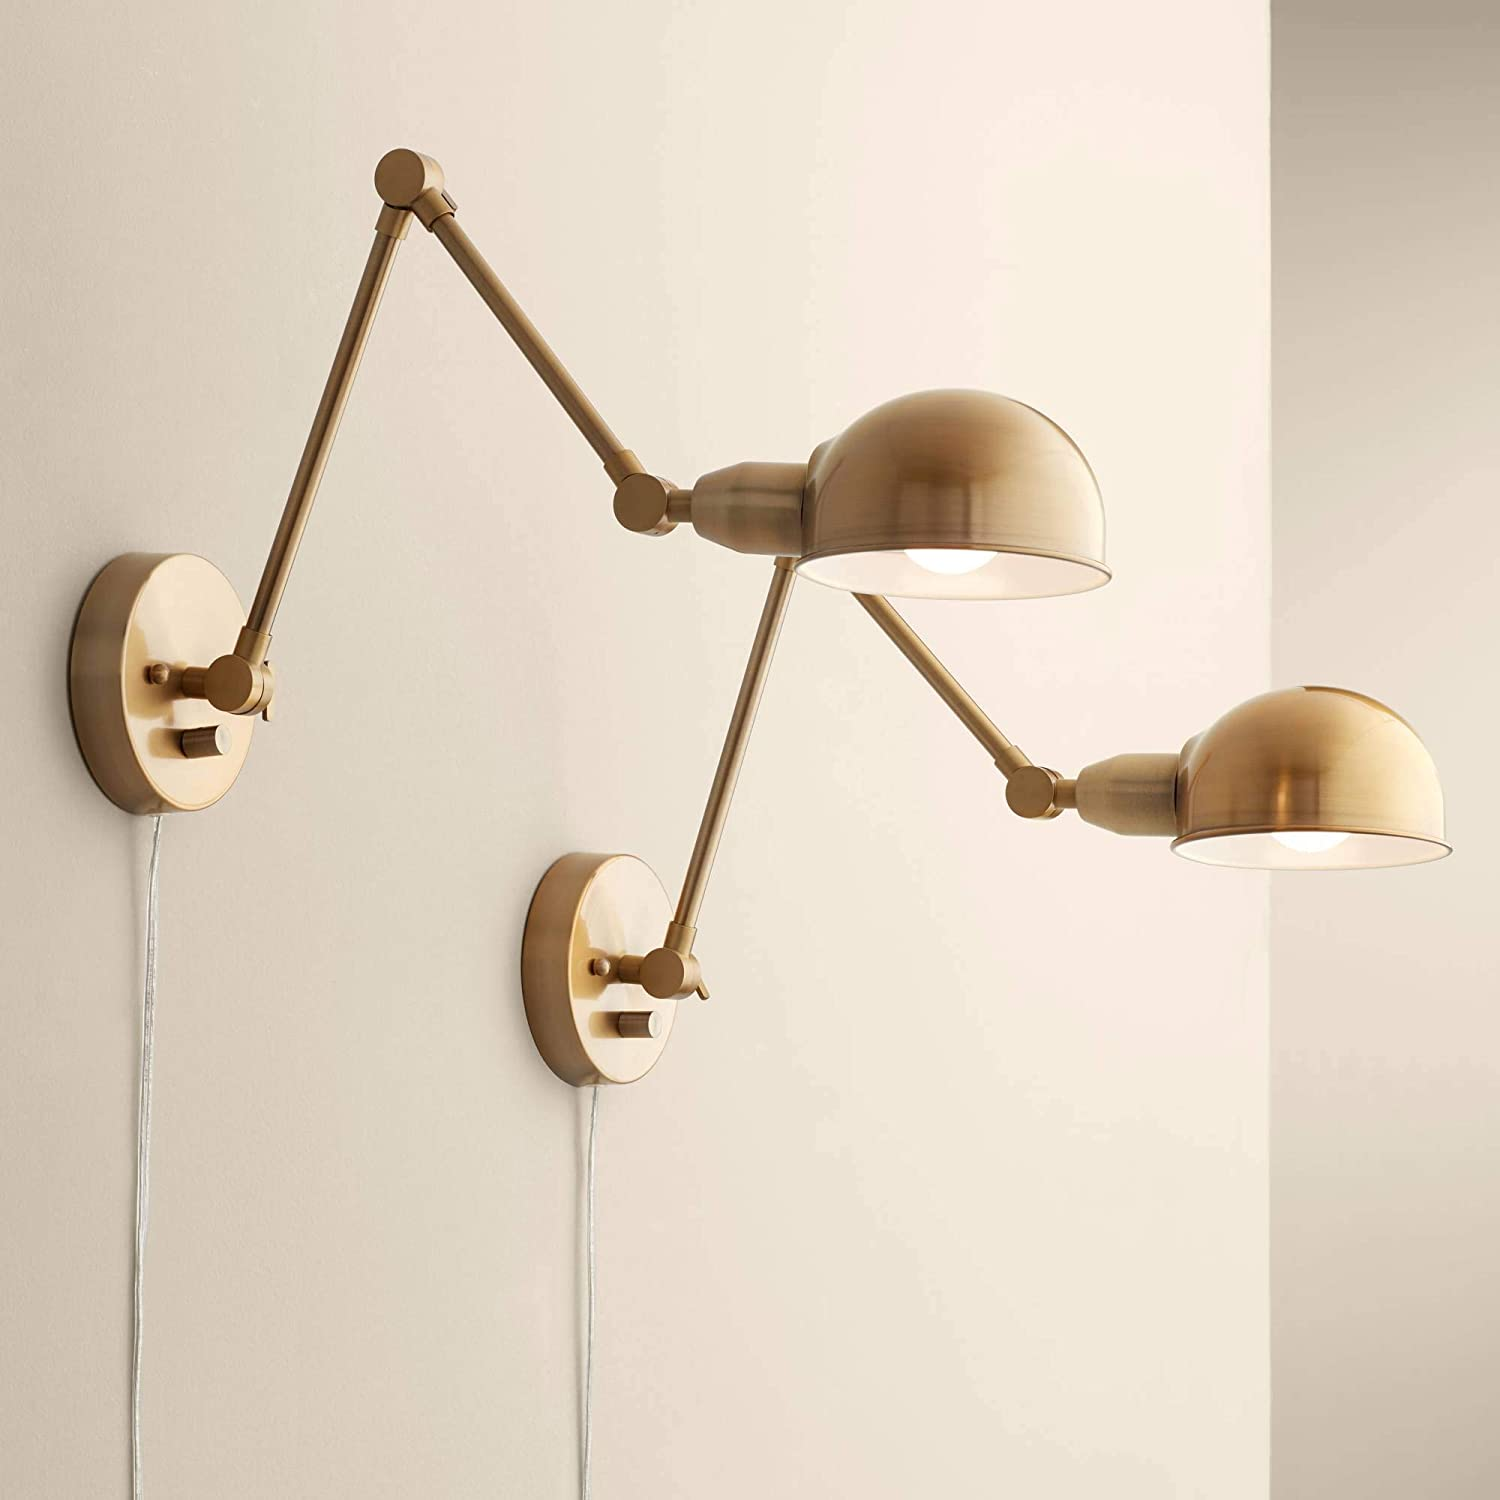 Somers Industrial Wall Lamps Set of 2 LED Antique Brass Plug-in Light Fixture Adjustable Up Down Half Dome Shades for Bedroom Bedside Living Room Reading - 360 Lighting